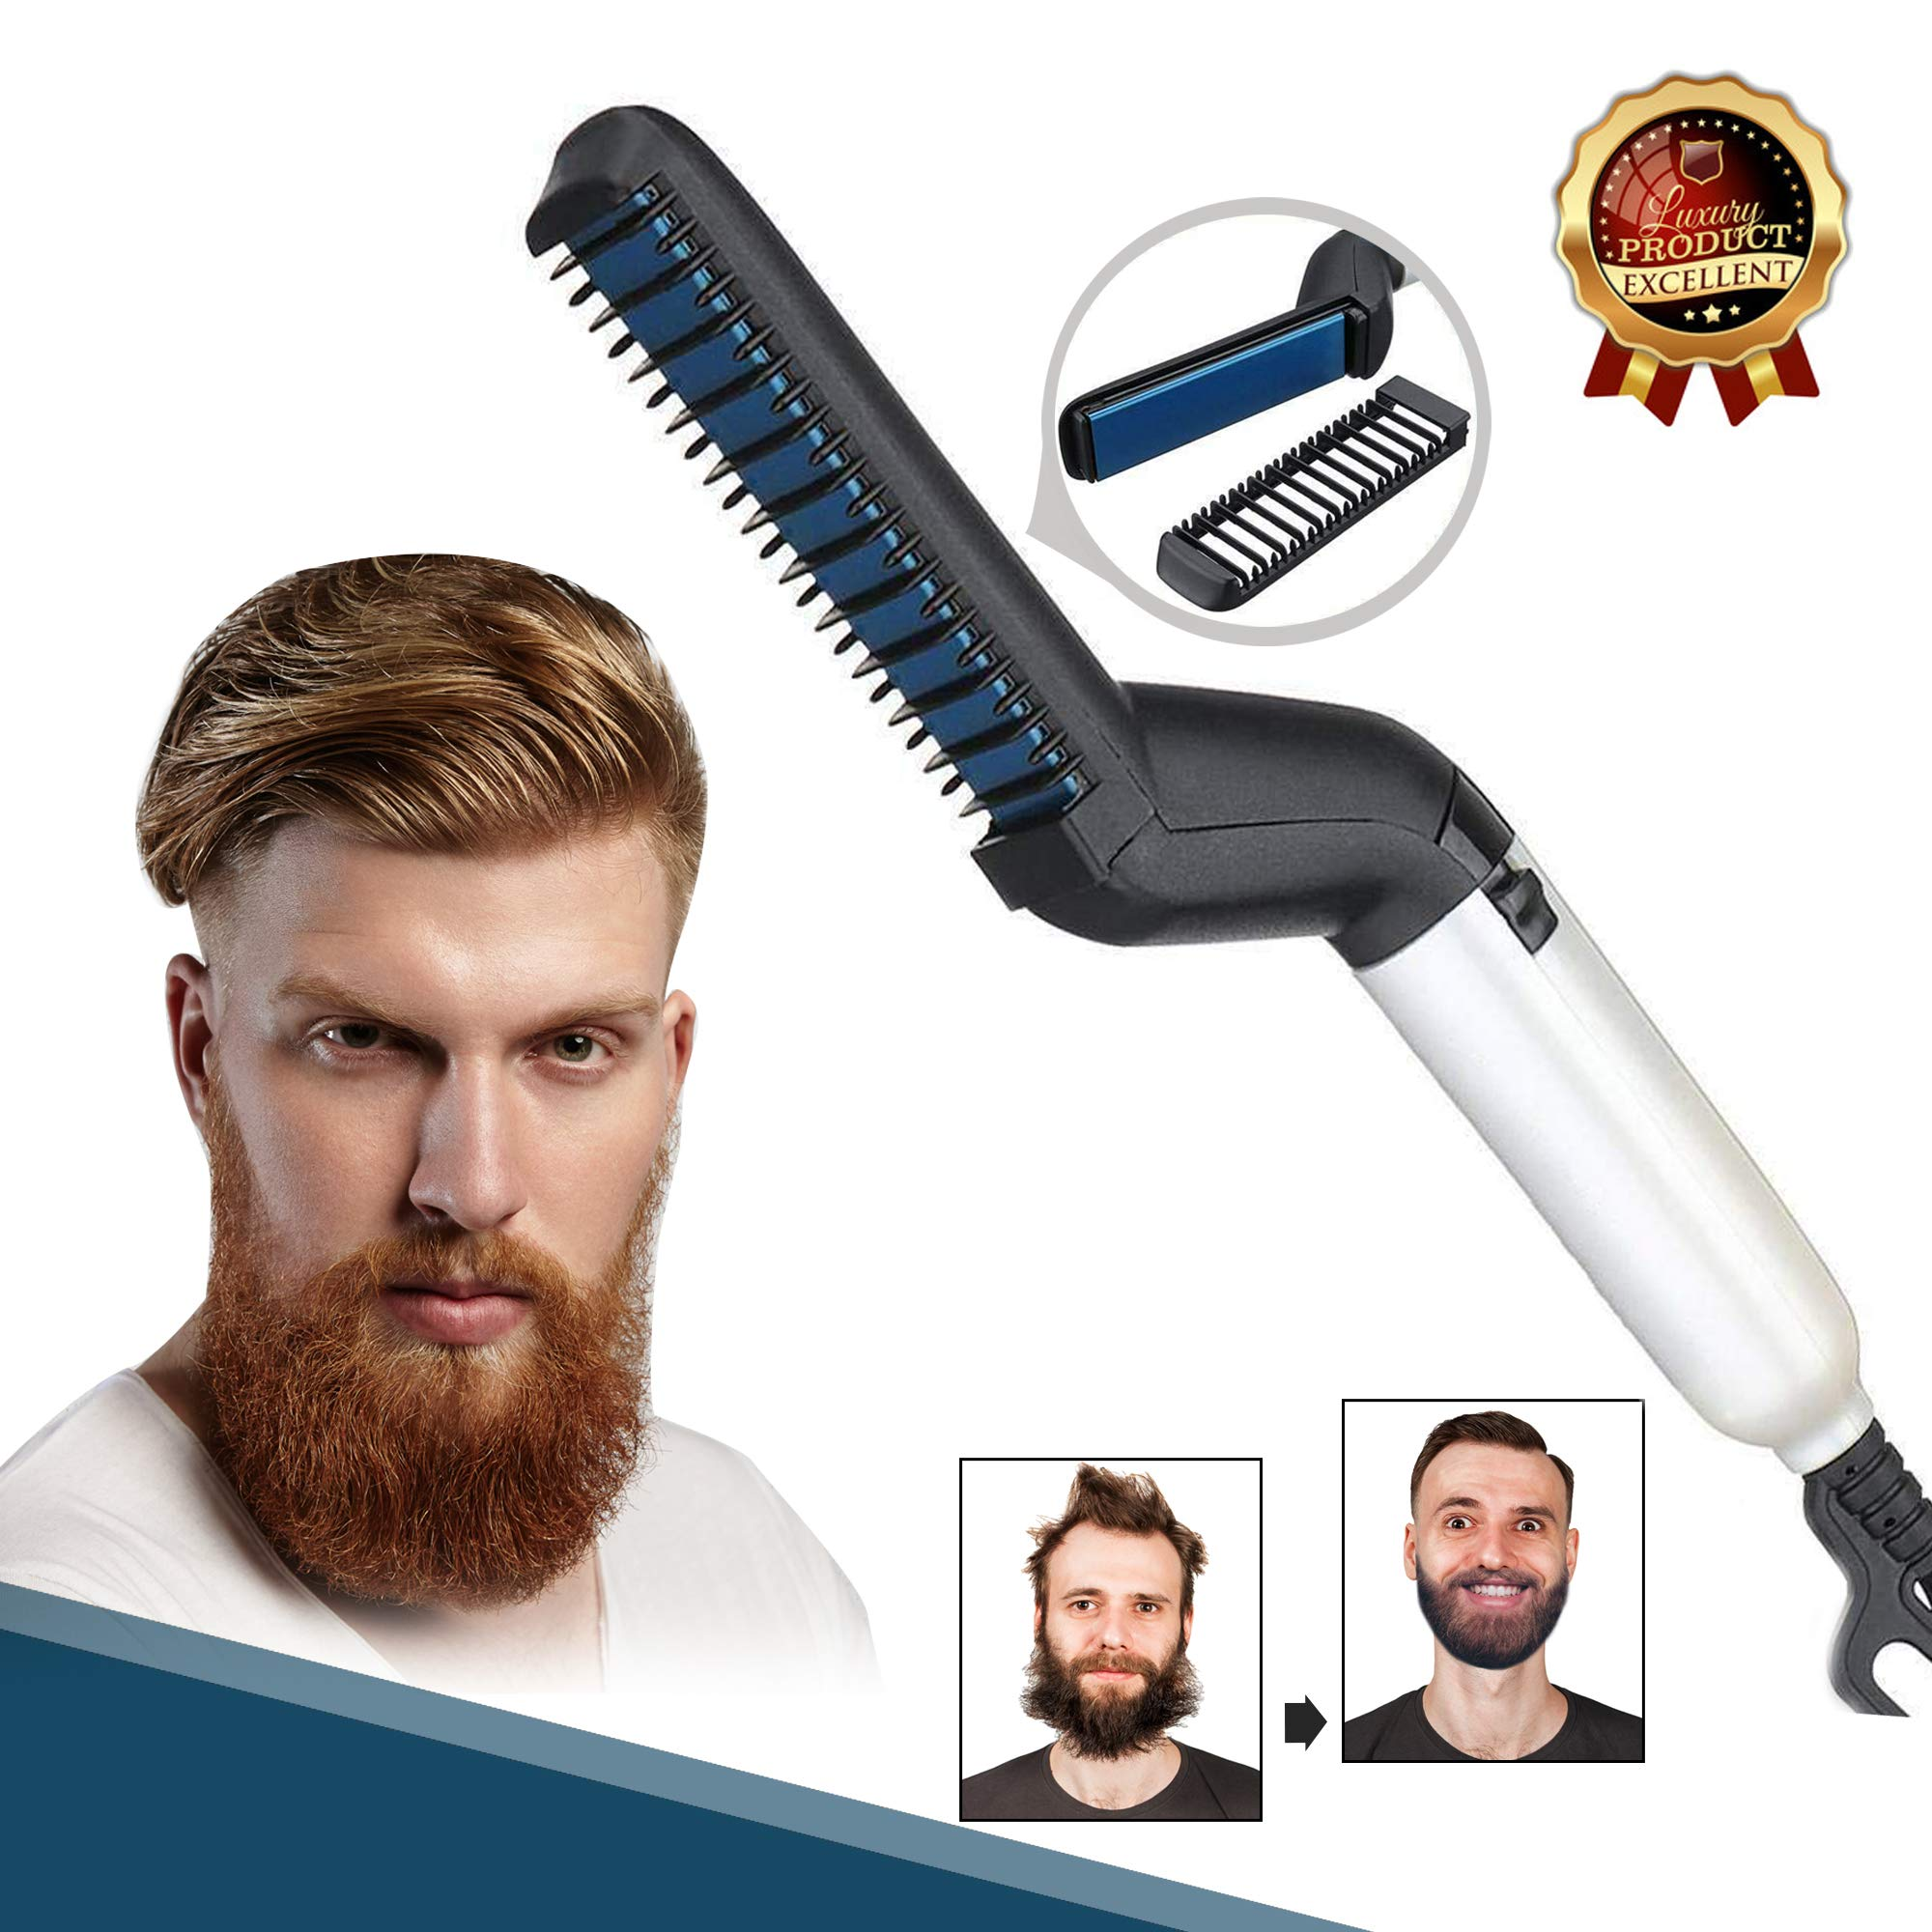 Electric Comb for Men, Hair and Beard Straightening Comb - Hair styling for Men - Adjustable Temperature with Ergonomic Design